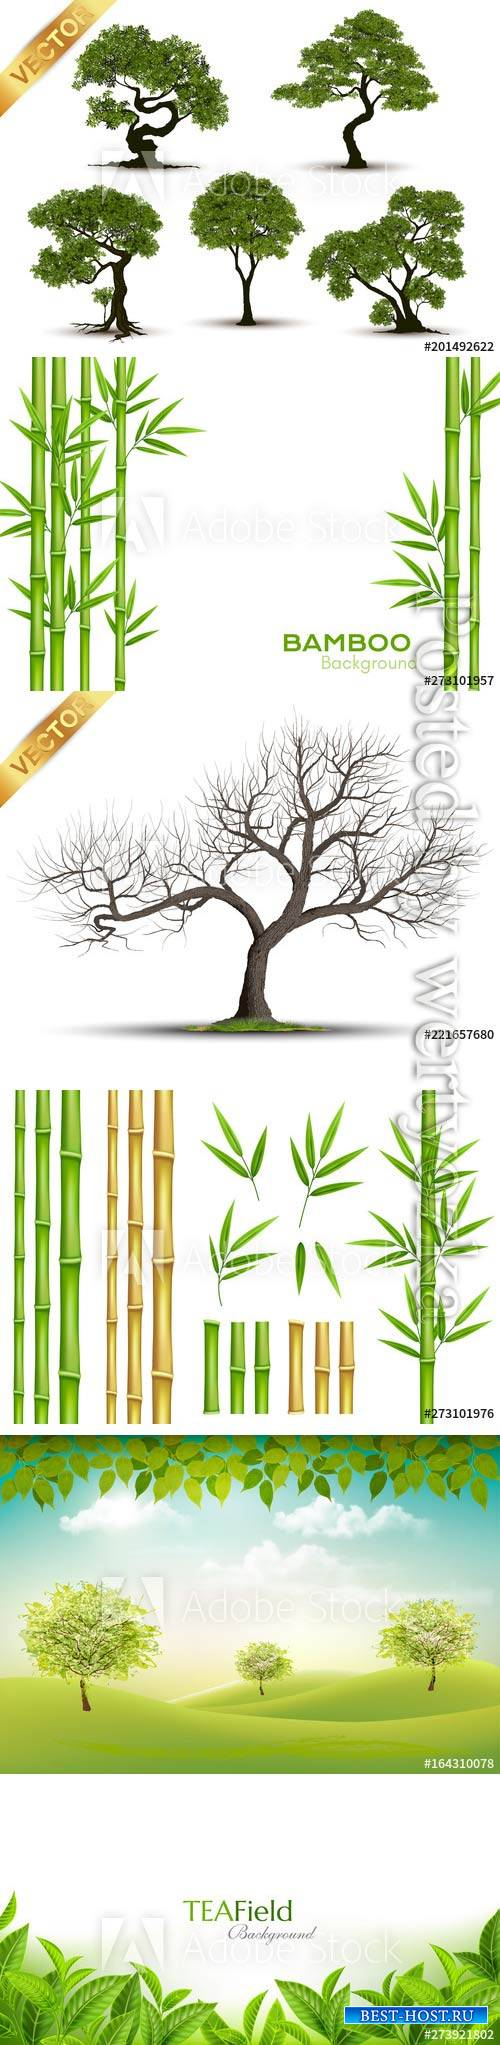 Vector trees, bamboo, green leaves